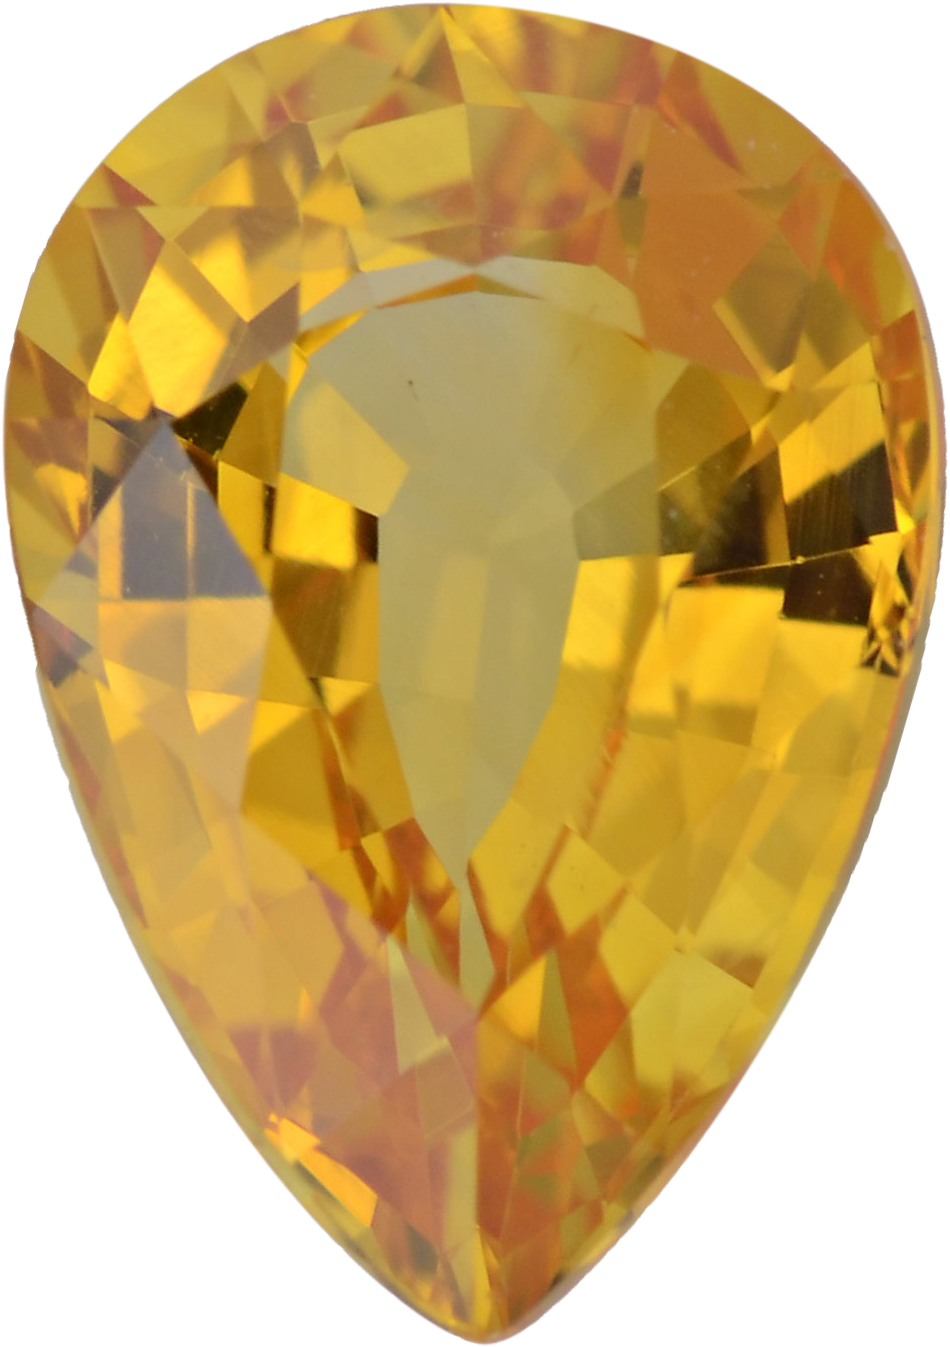 Low Price On Sapphire Loose Gem in Pear Cut, Medium Orangy Yellow, 7.50 x 5.24  mm, 1.15 Carats